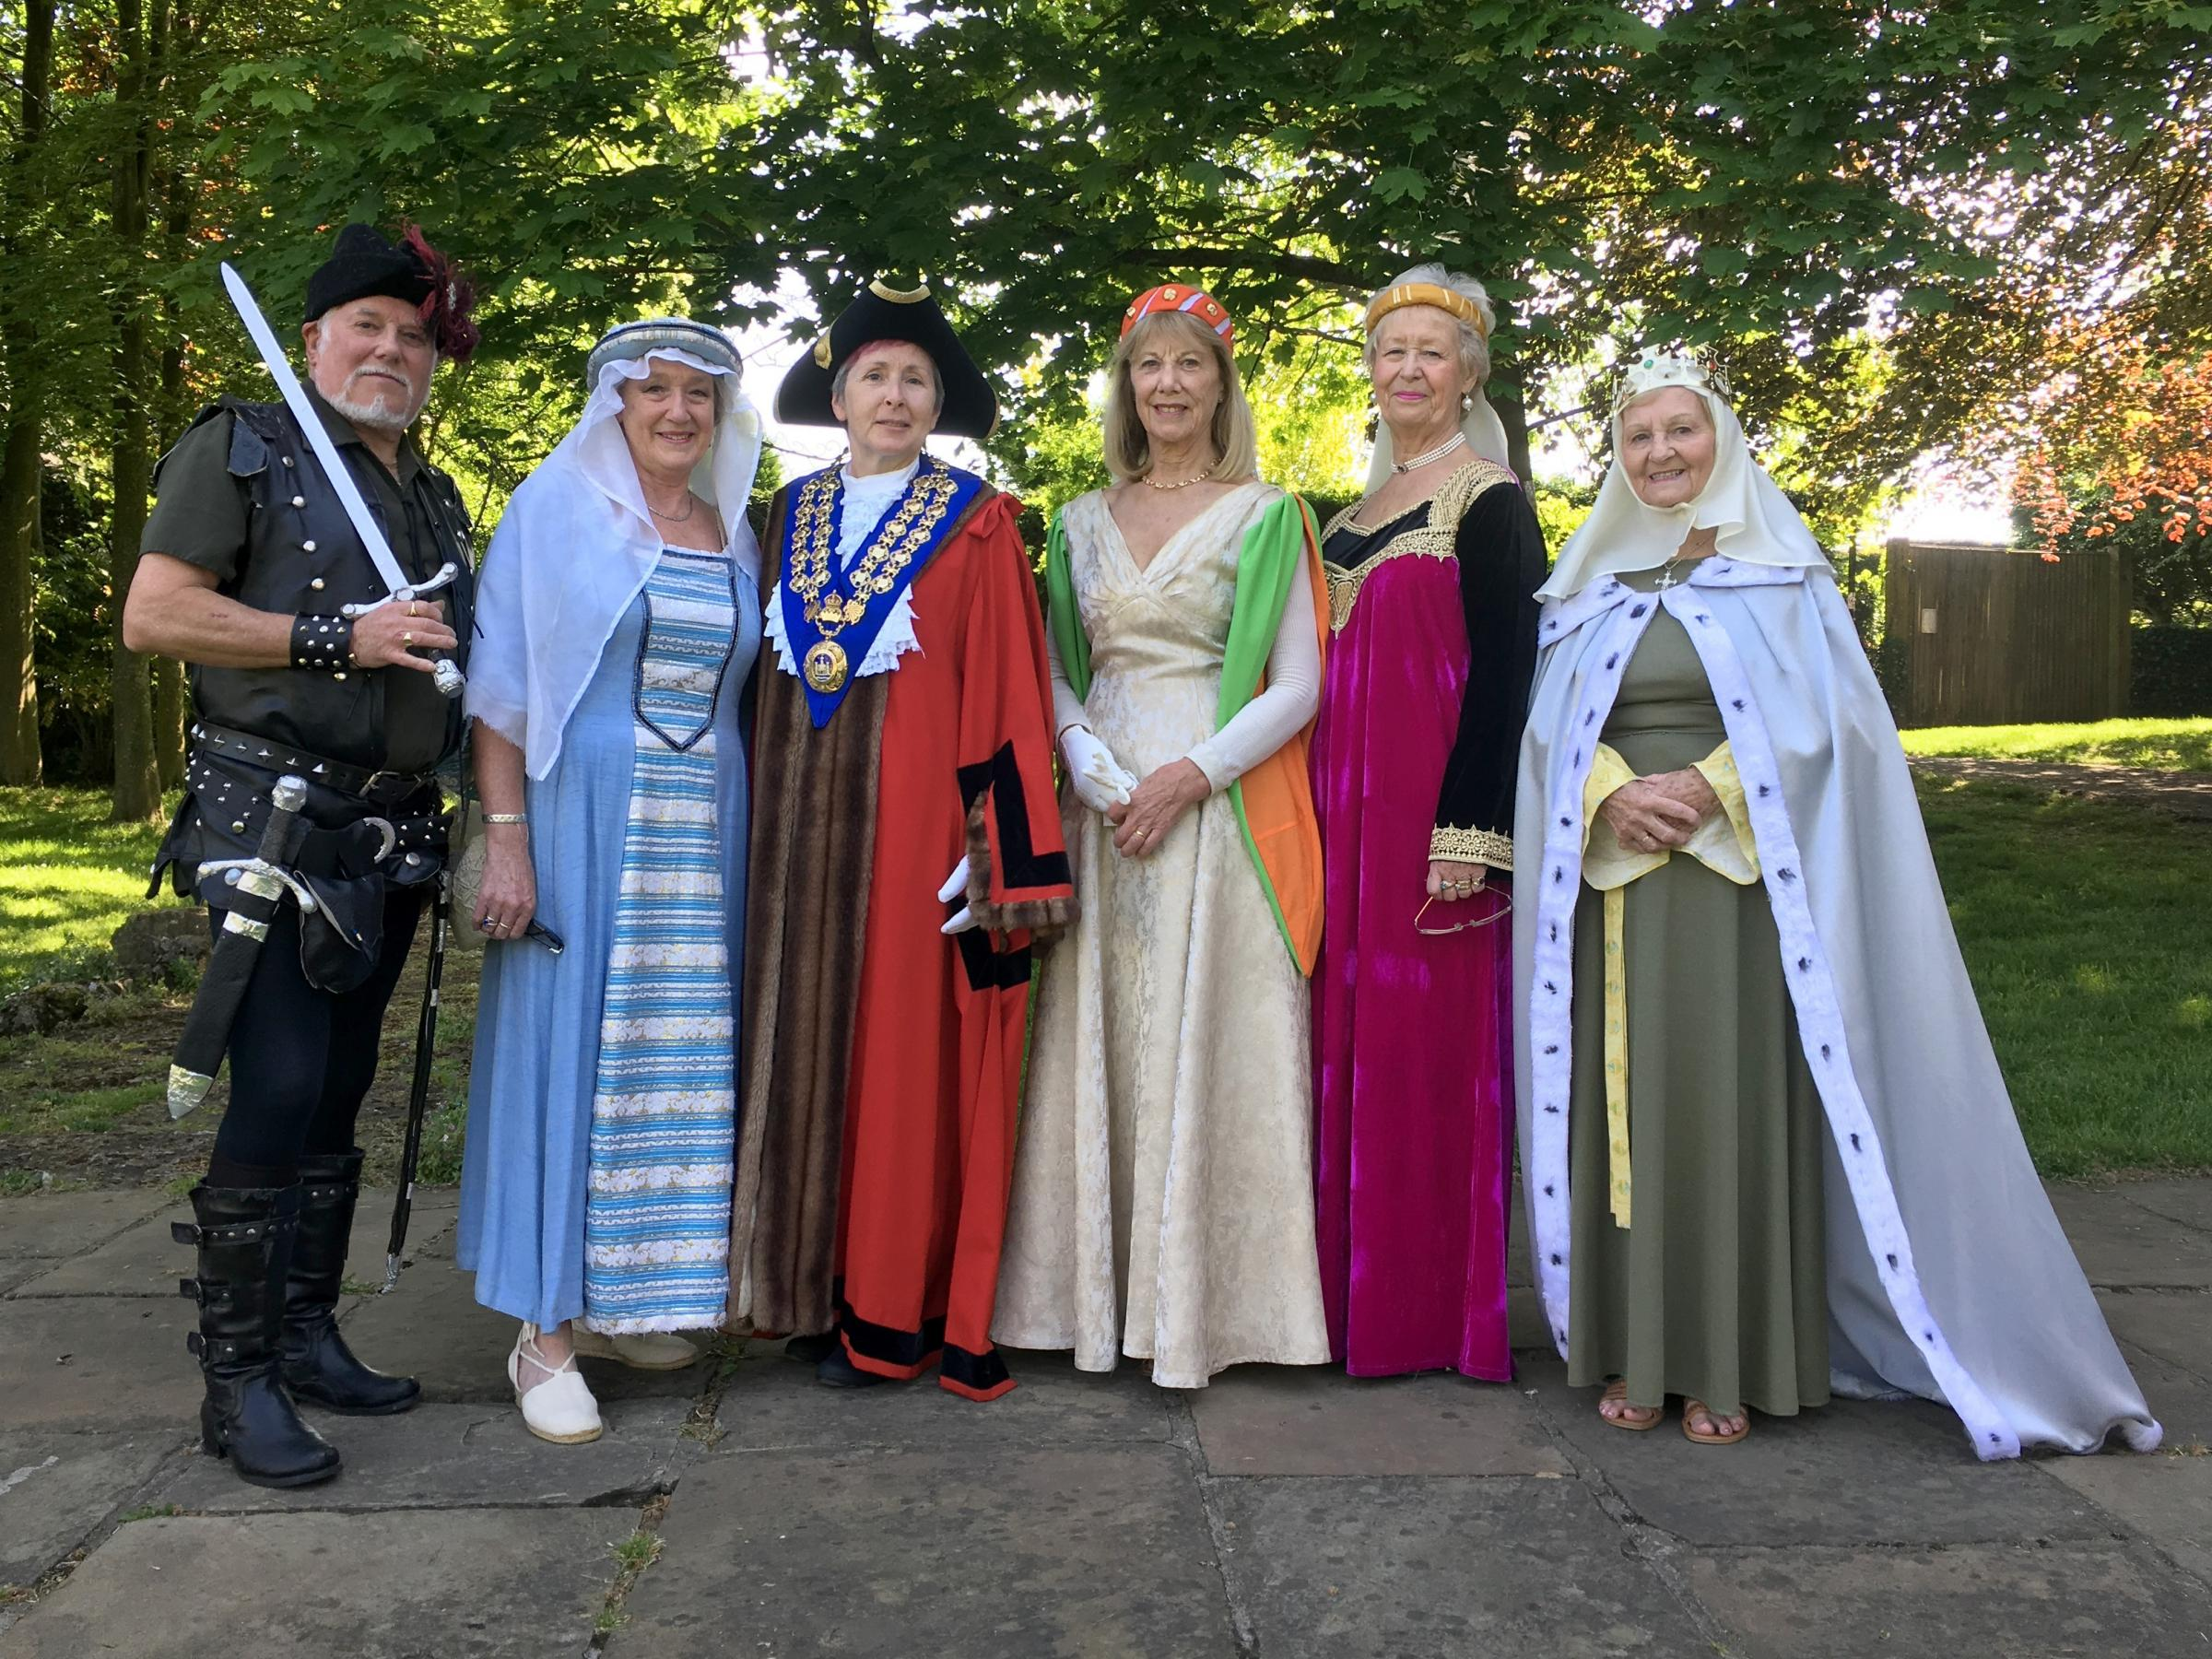 Malmesbury Mayor Vandelli third from left at St Aldhelm's fair last weekend